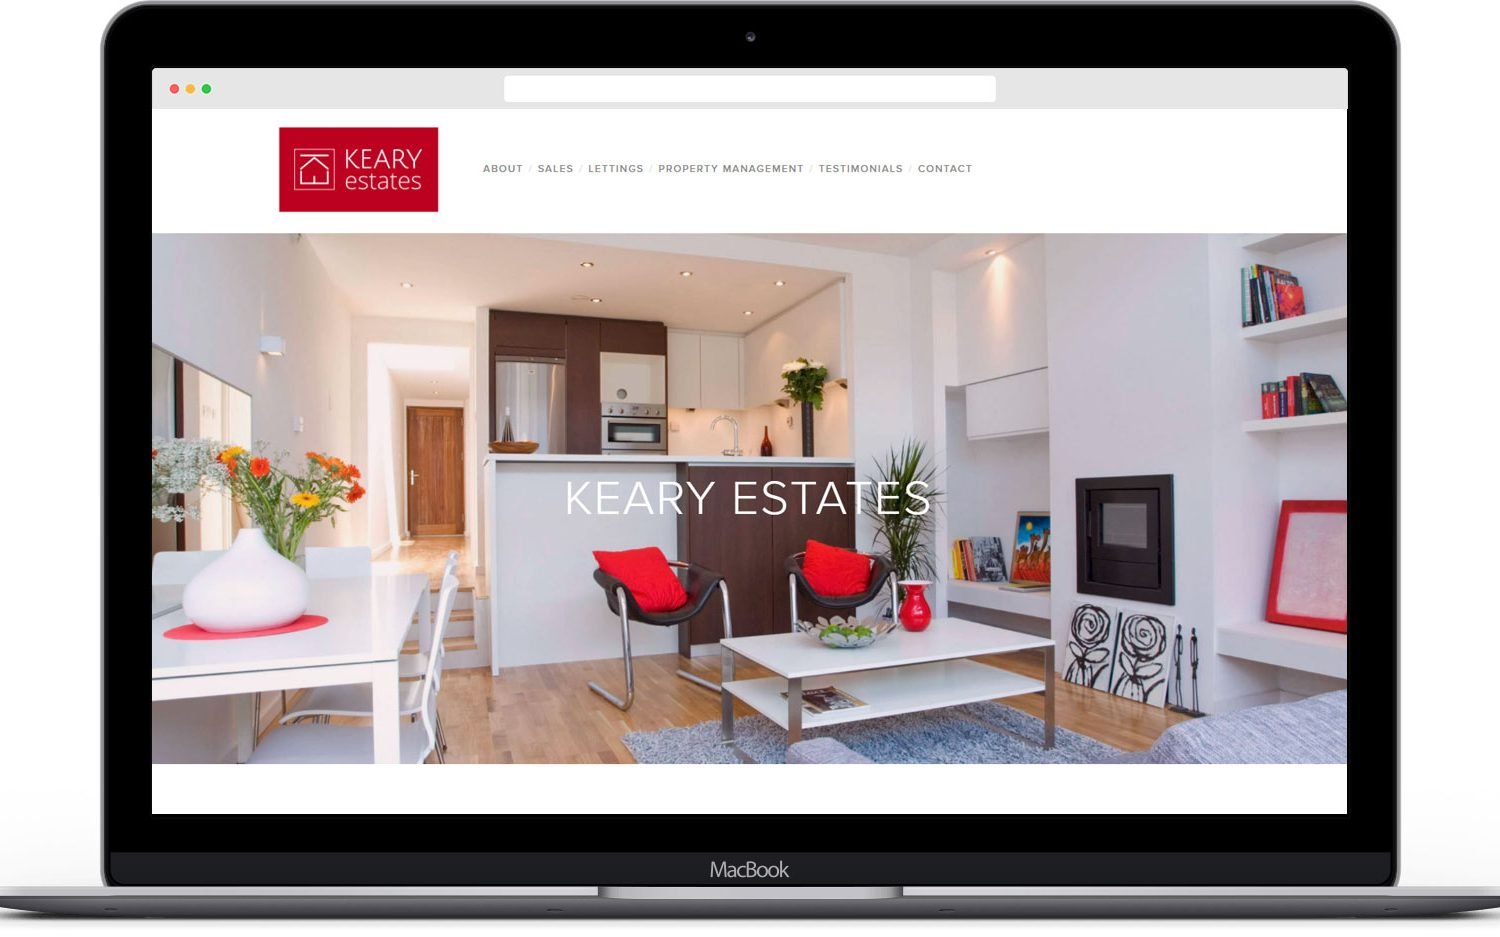 Responsive website for Keary Estates viewed on a laptop